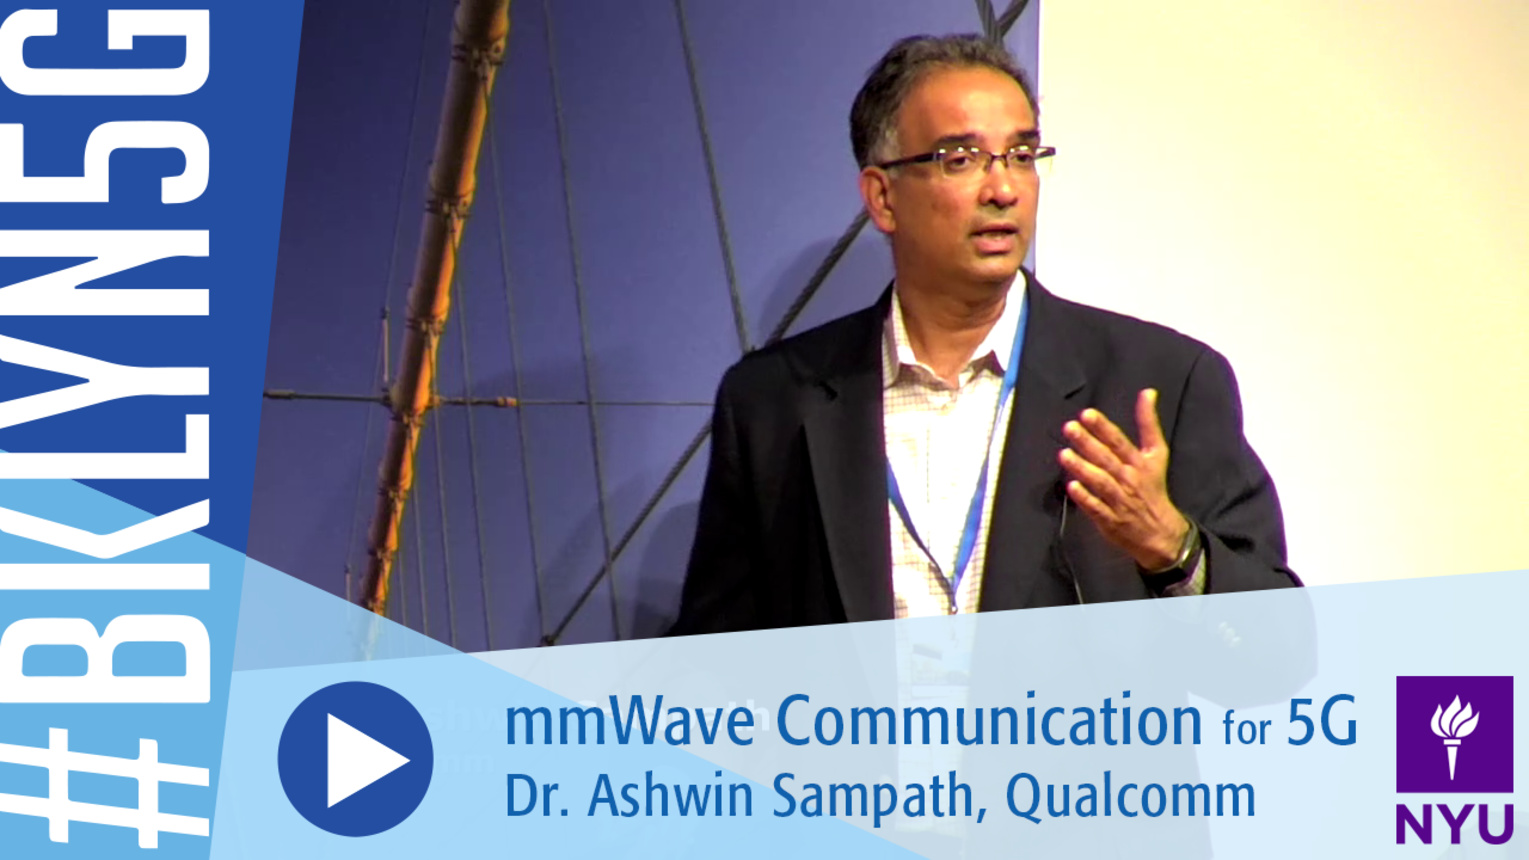 Brooklyn 5G 2016: Dr. Ashwin Sampath on mmWave Communication for 5G